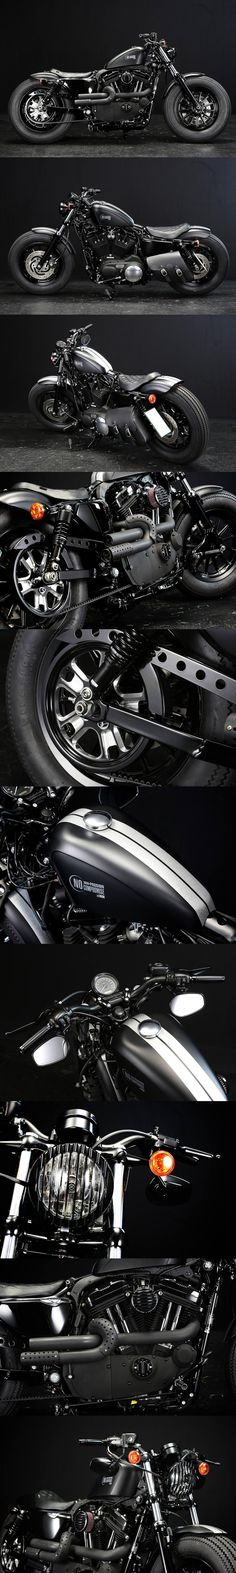 Harley-Davidson Sportster 48 Custom from Rough Crafts Call S .- Harley-Davidson Sportster 48 Custom von Rough Crafts Rufen Sie heute an oder sch… Harley-Davidson Sportster 48 Custom from Rough Crafts Call Today or Watch … – Motorcycles – - Moto Chopper, Chopper Motorcycle, Motorcycle Style, Motorcycle Helmets, Motorcycle Fashion, Women Motorcycle, Motorcycle Accessories, Bobber Style, Scrambler Motorcycle